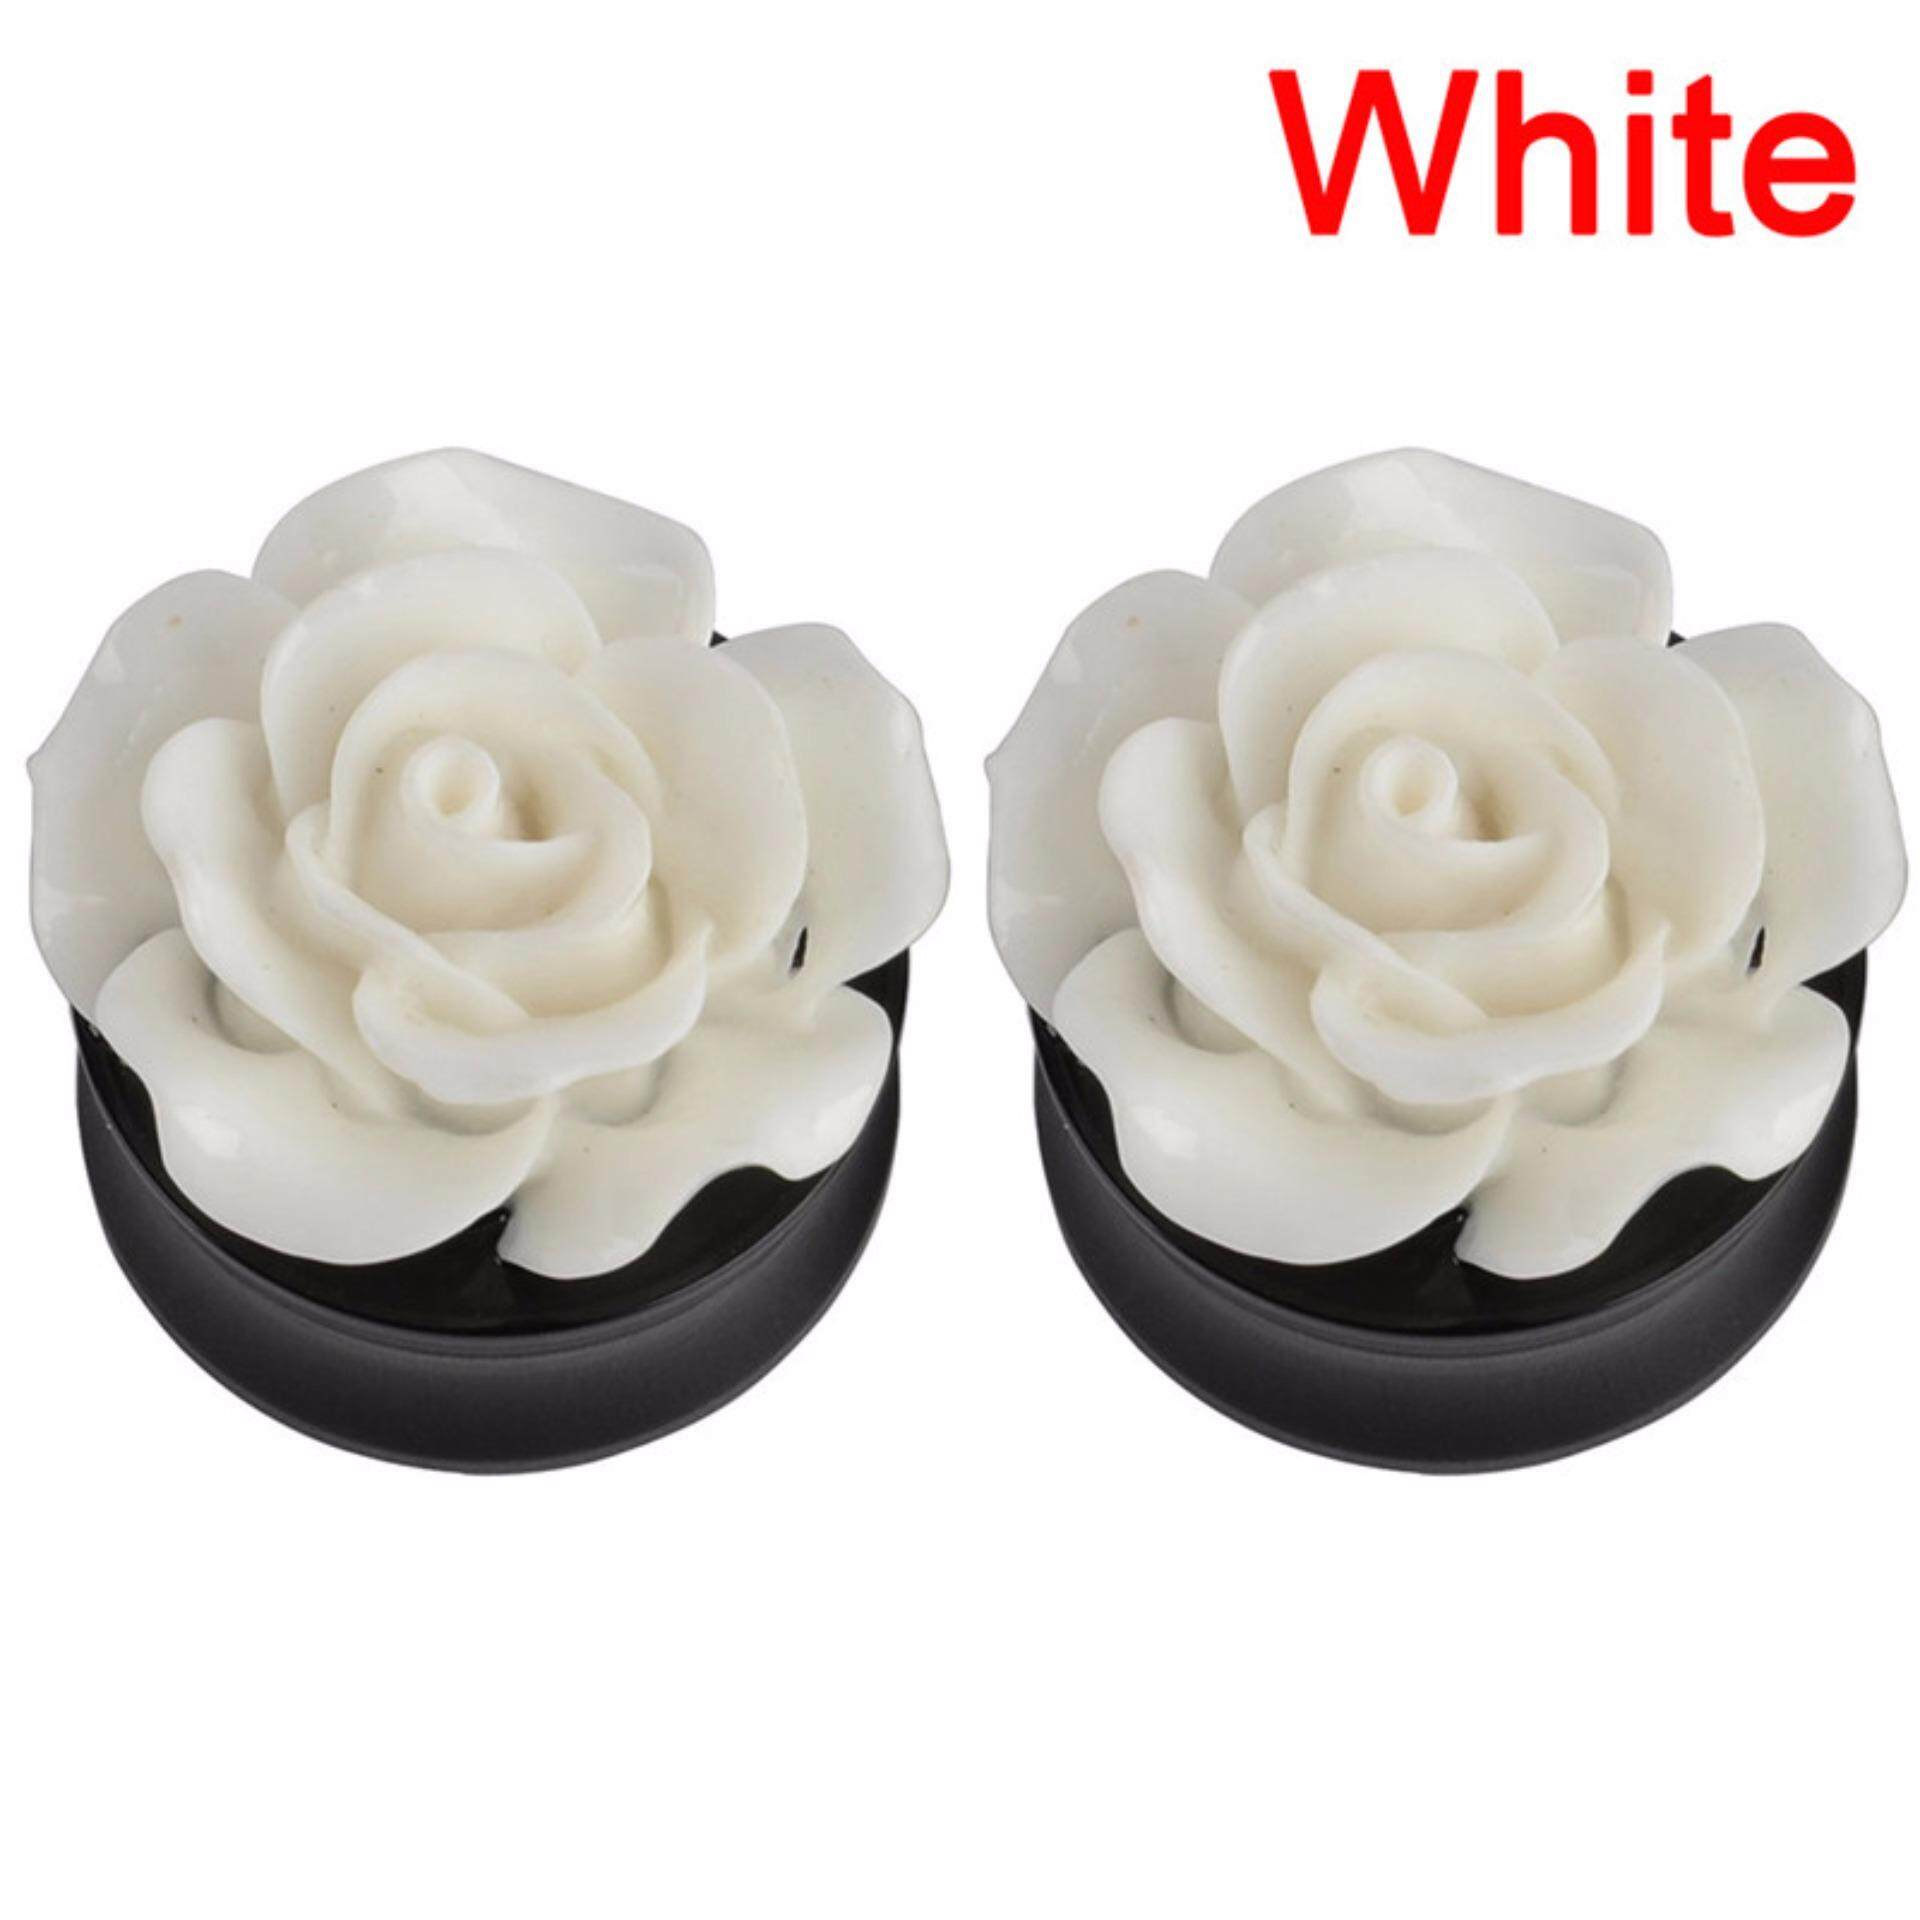 Ear Plugs Tunnels Pure Rose Flower Saddle Flesh Expanders Piercing Jewelry Chic White 22mm - intl